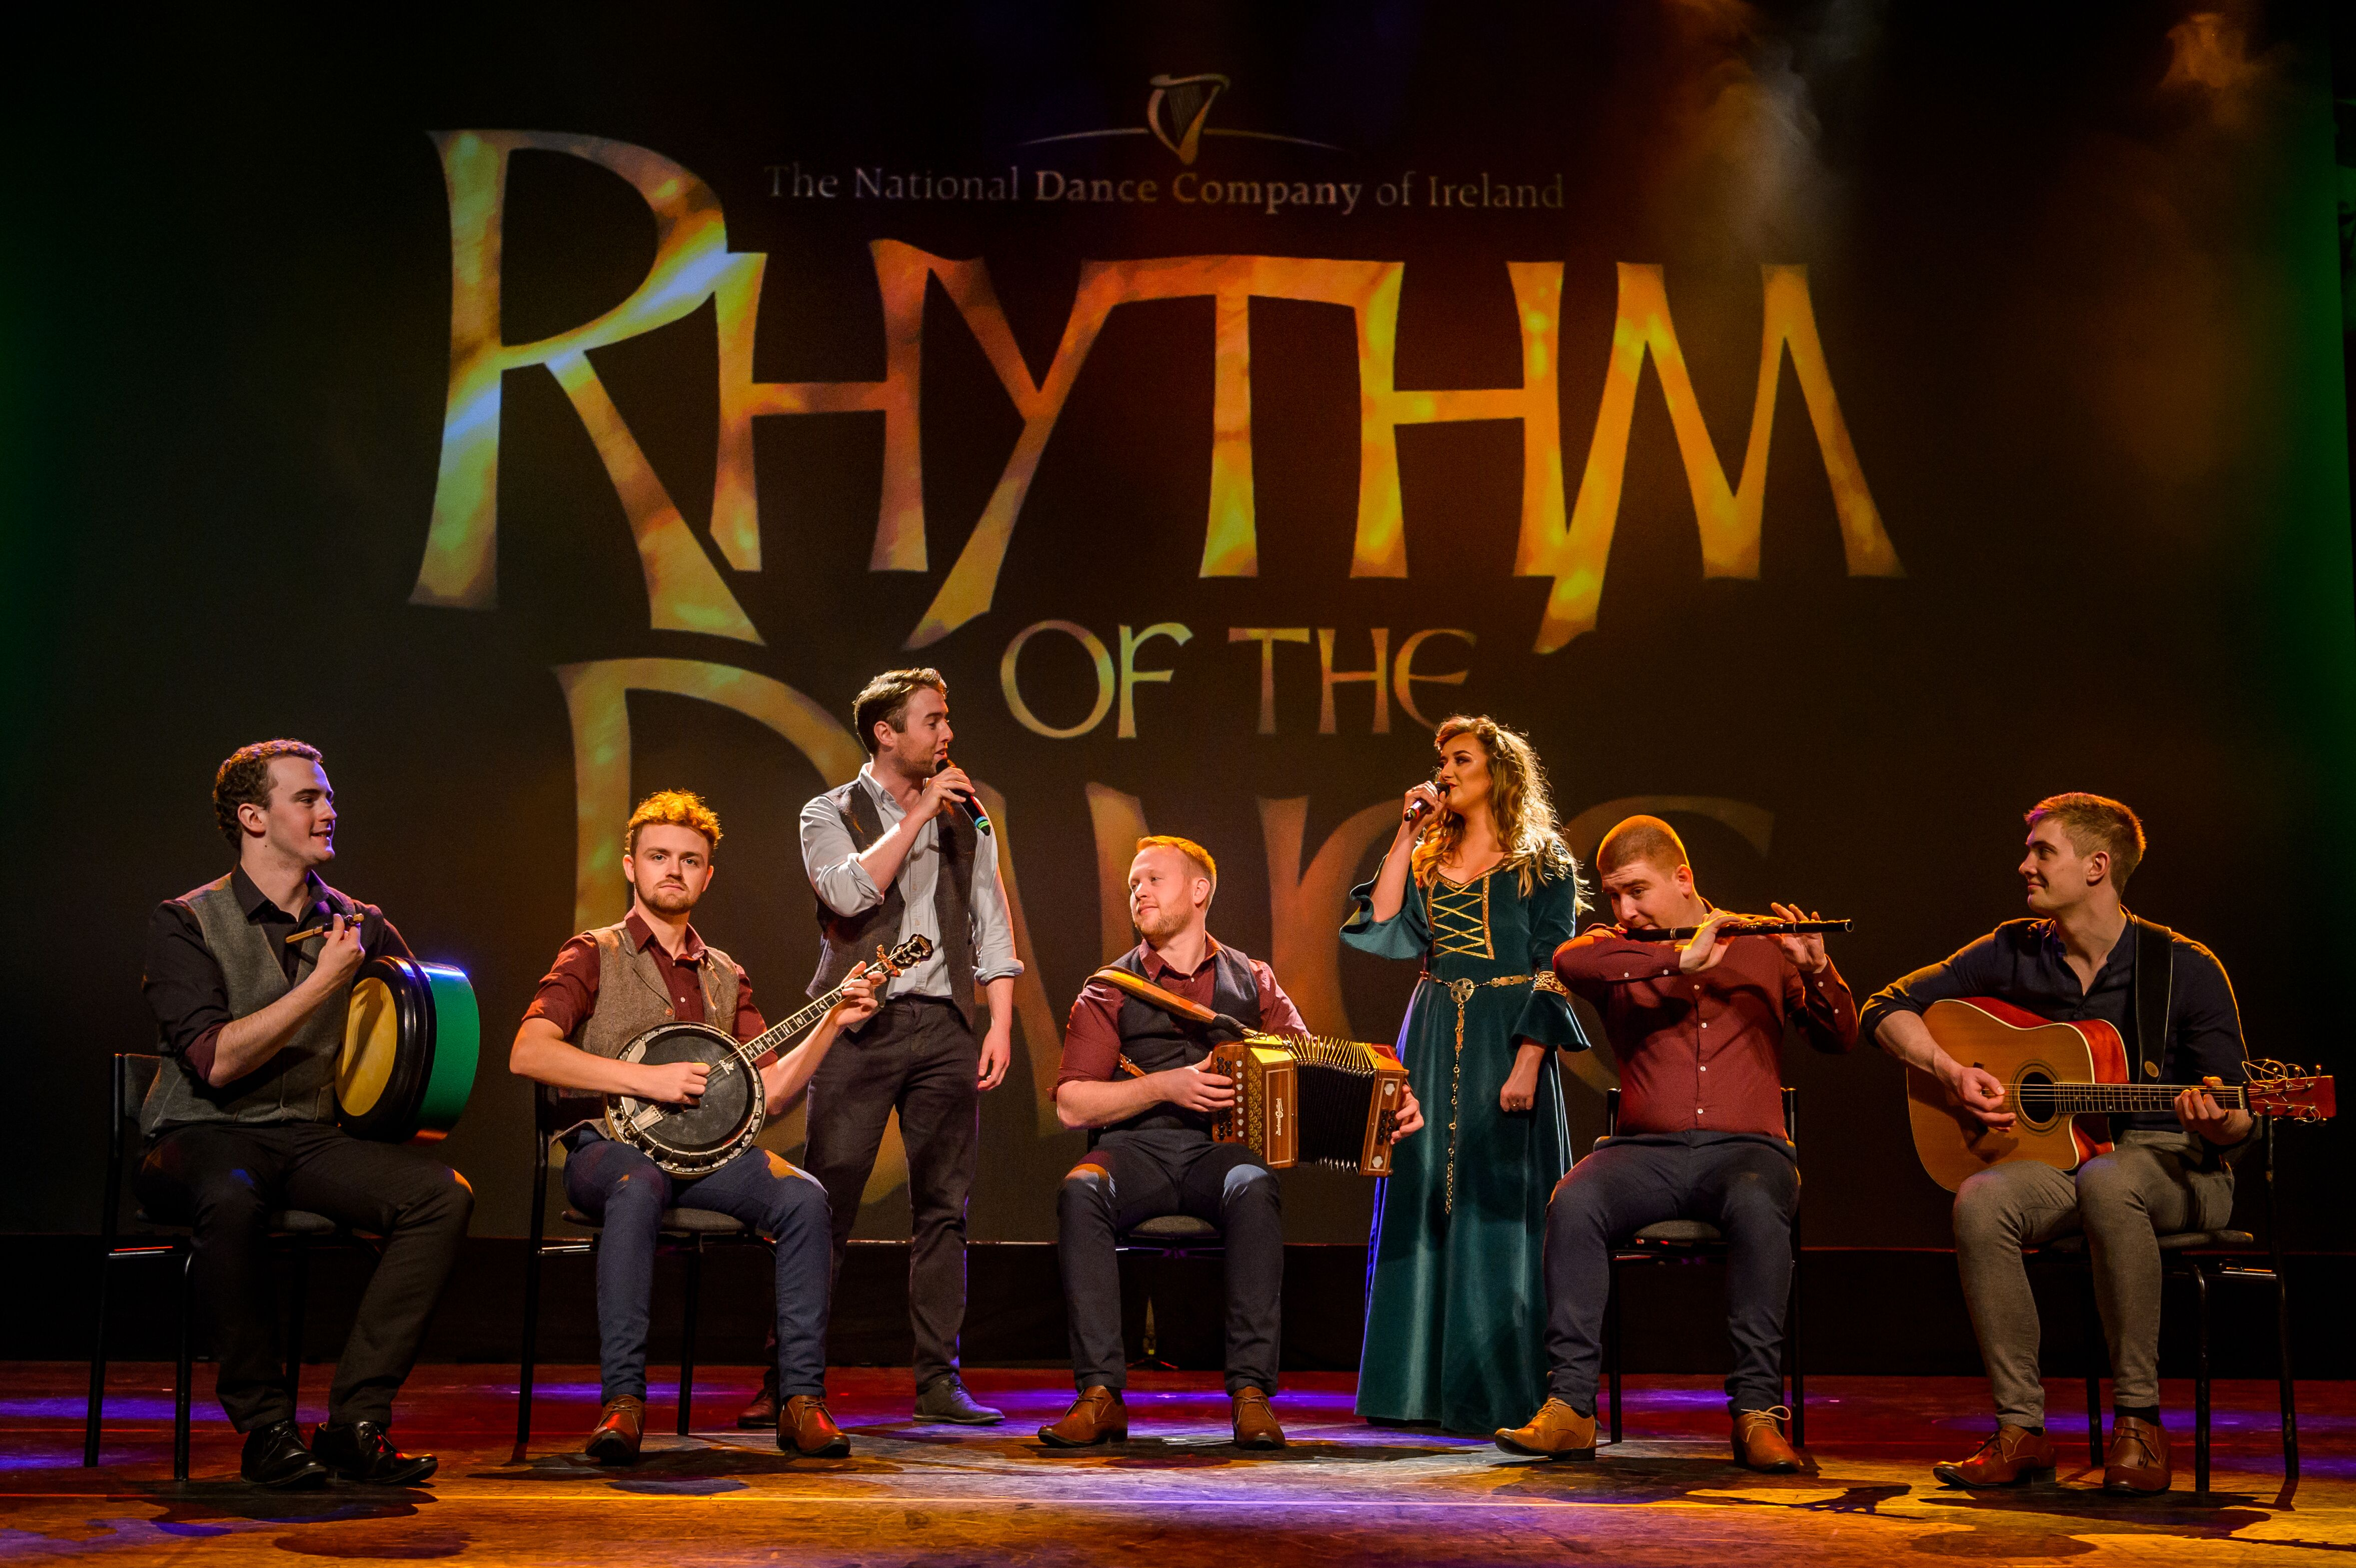 "Ireland's ""Rhythm of the Dance"" - World Champion Dancers Perform Step, Jigs, and Reels, Accompanied by Live Music"